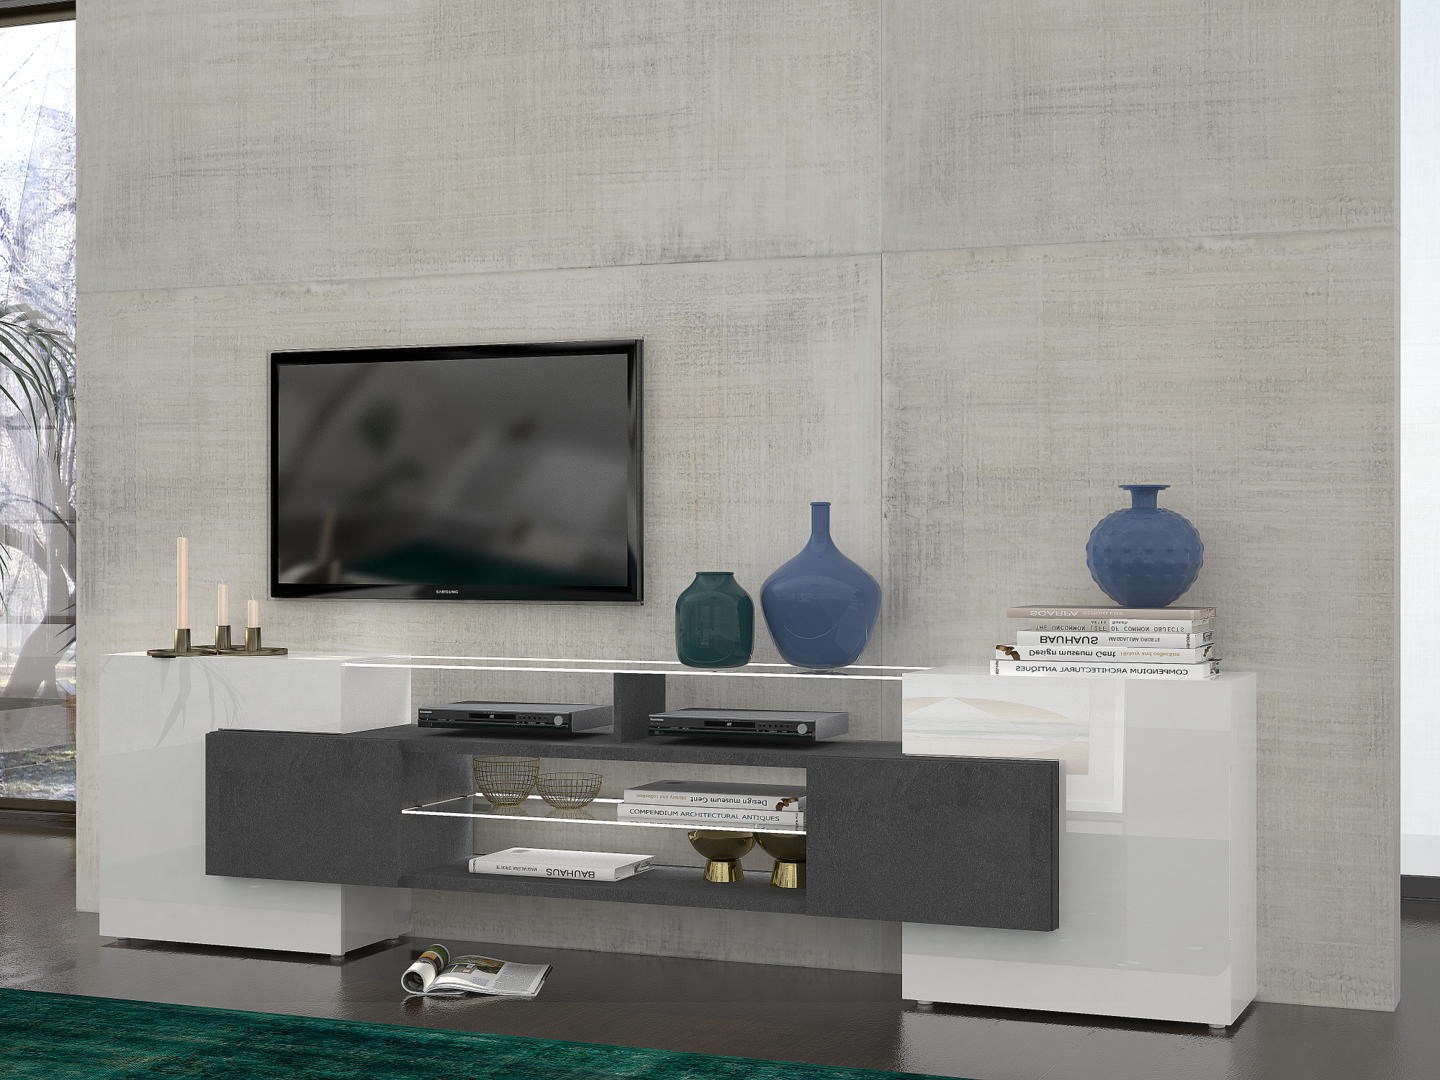 porta tv moderno dublino mobile soggiorno bianco e grigio. Black Bedroom Furniture Sets. Home Design Ideas